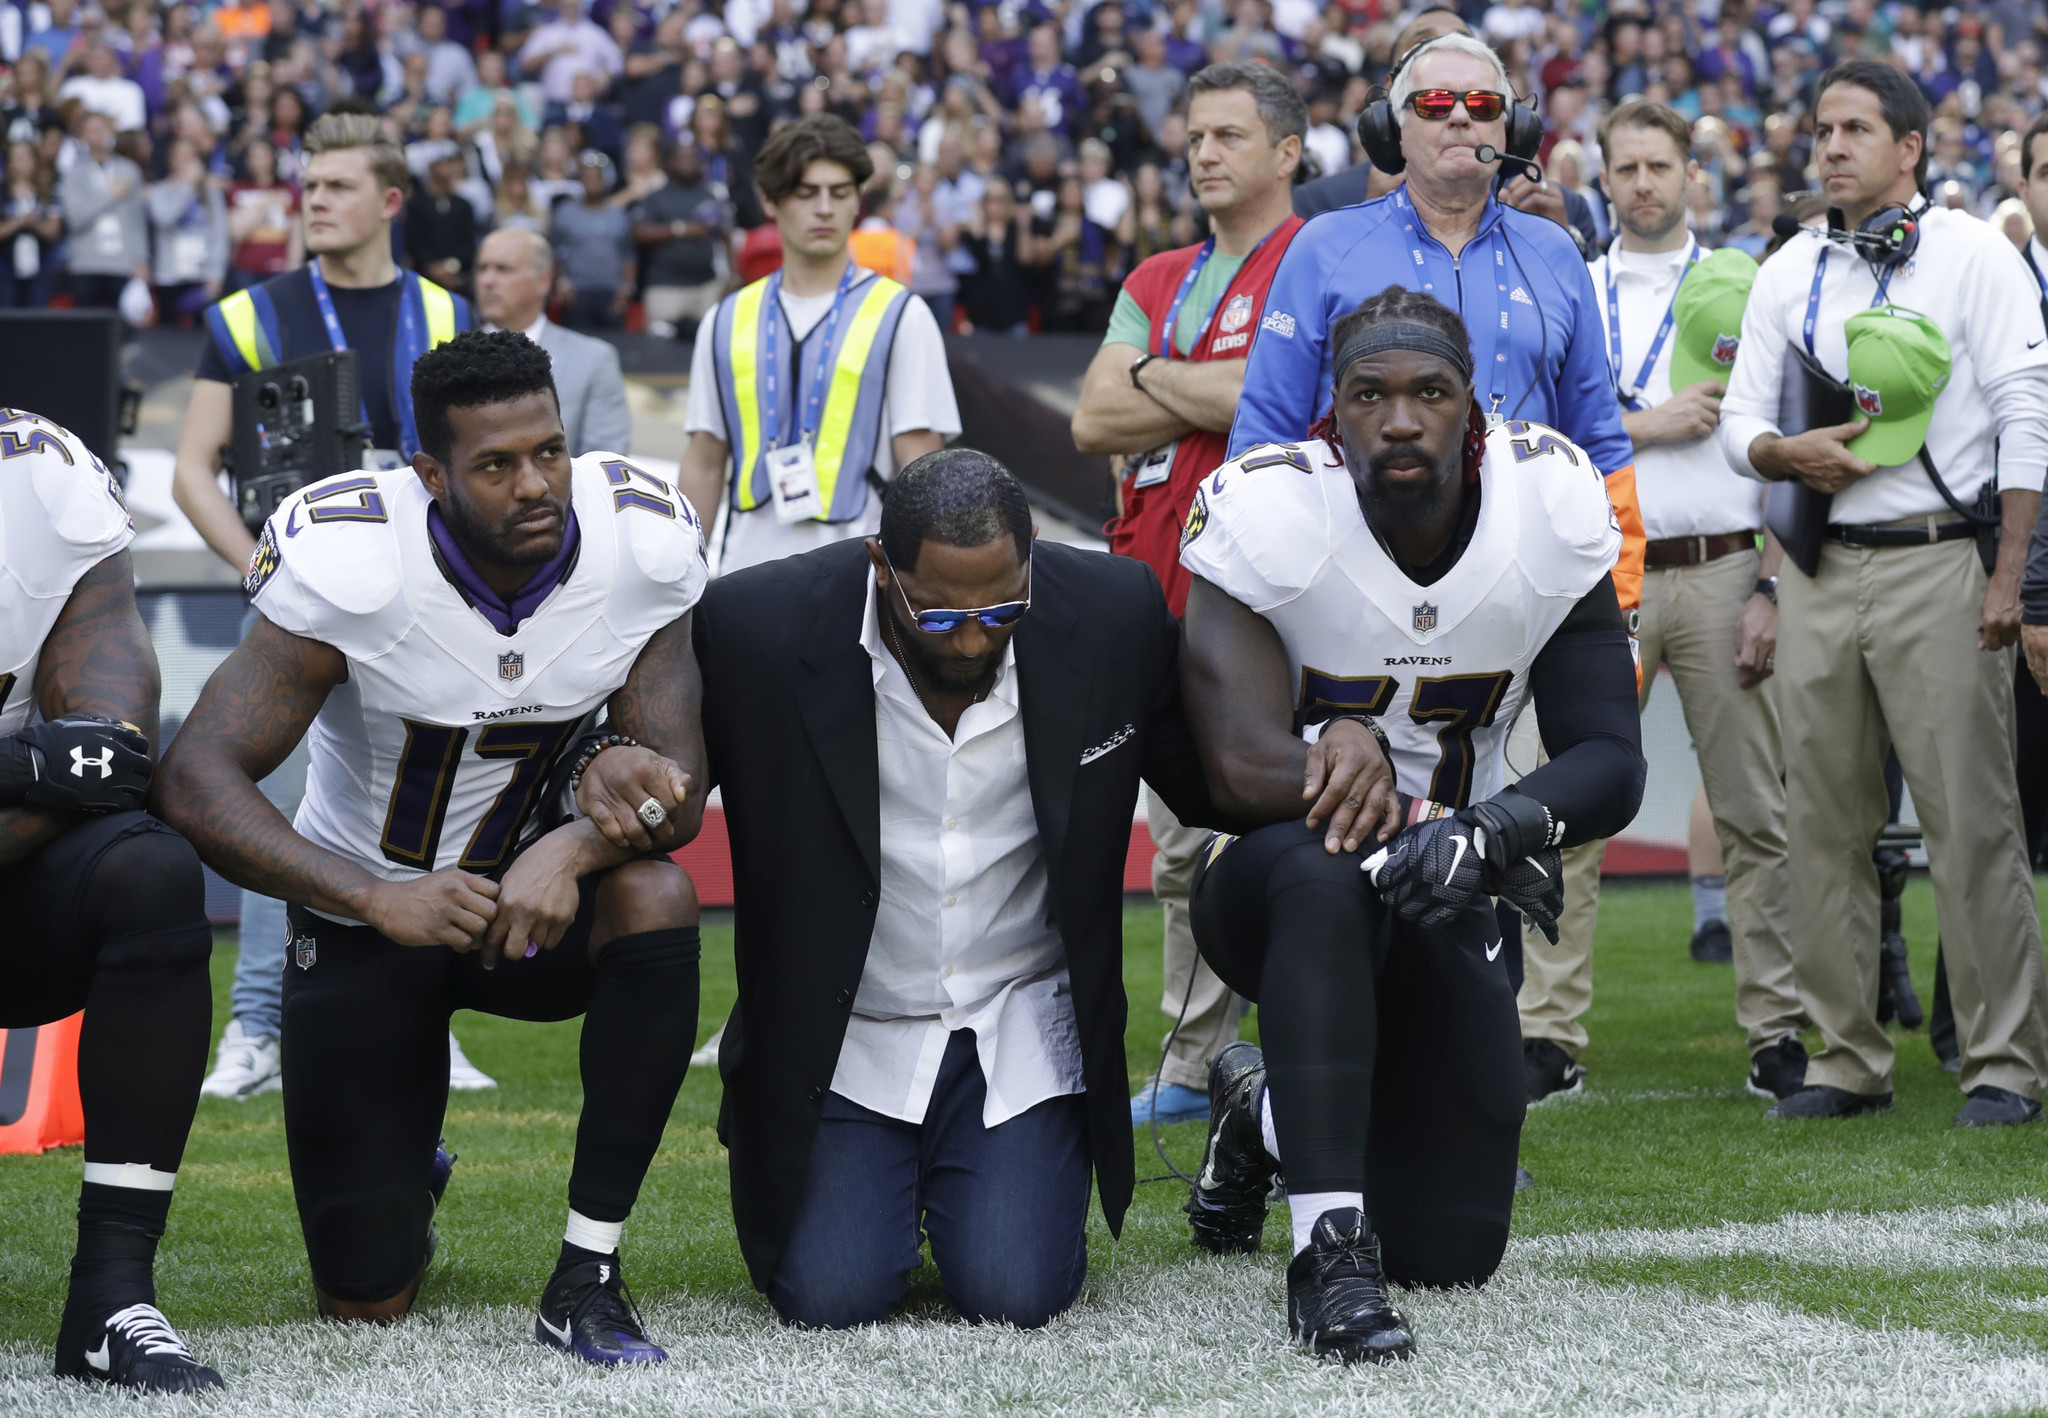 As trump continues his attacks nfl players protest by kneeling or locking arms la times